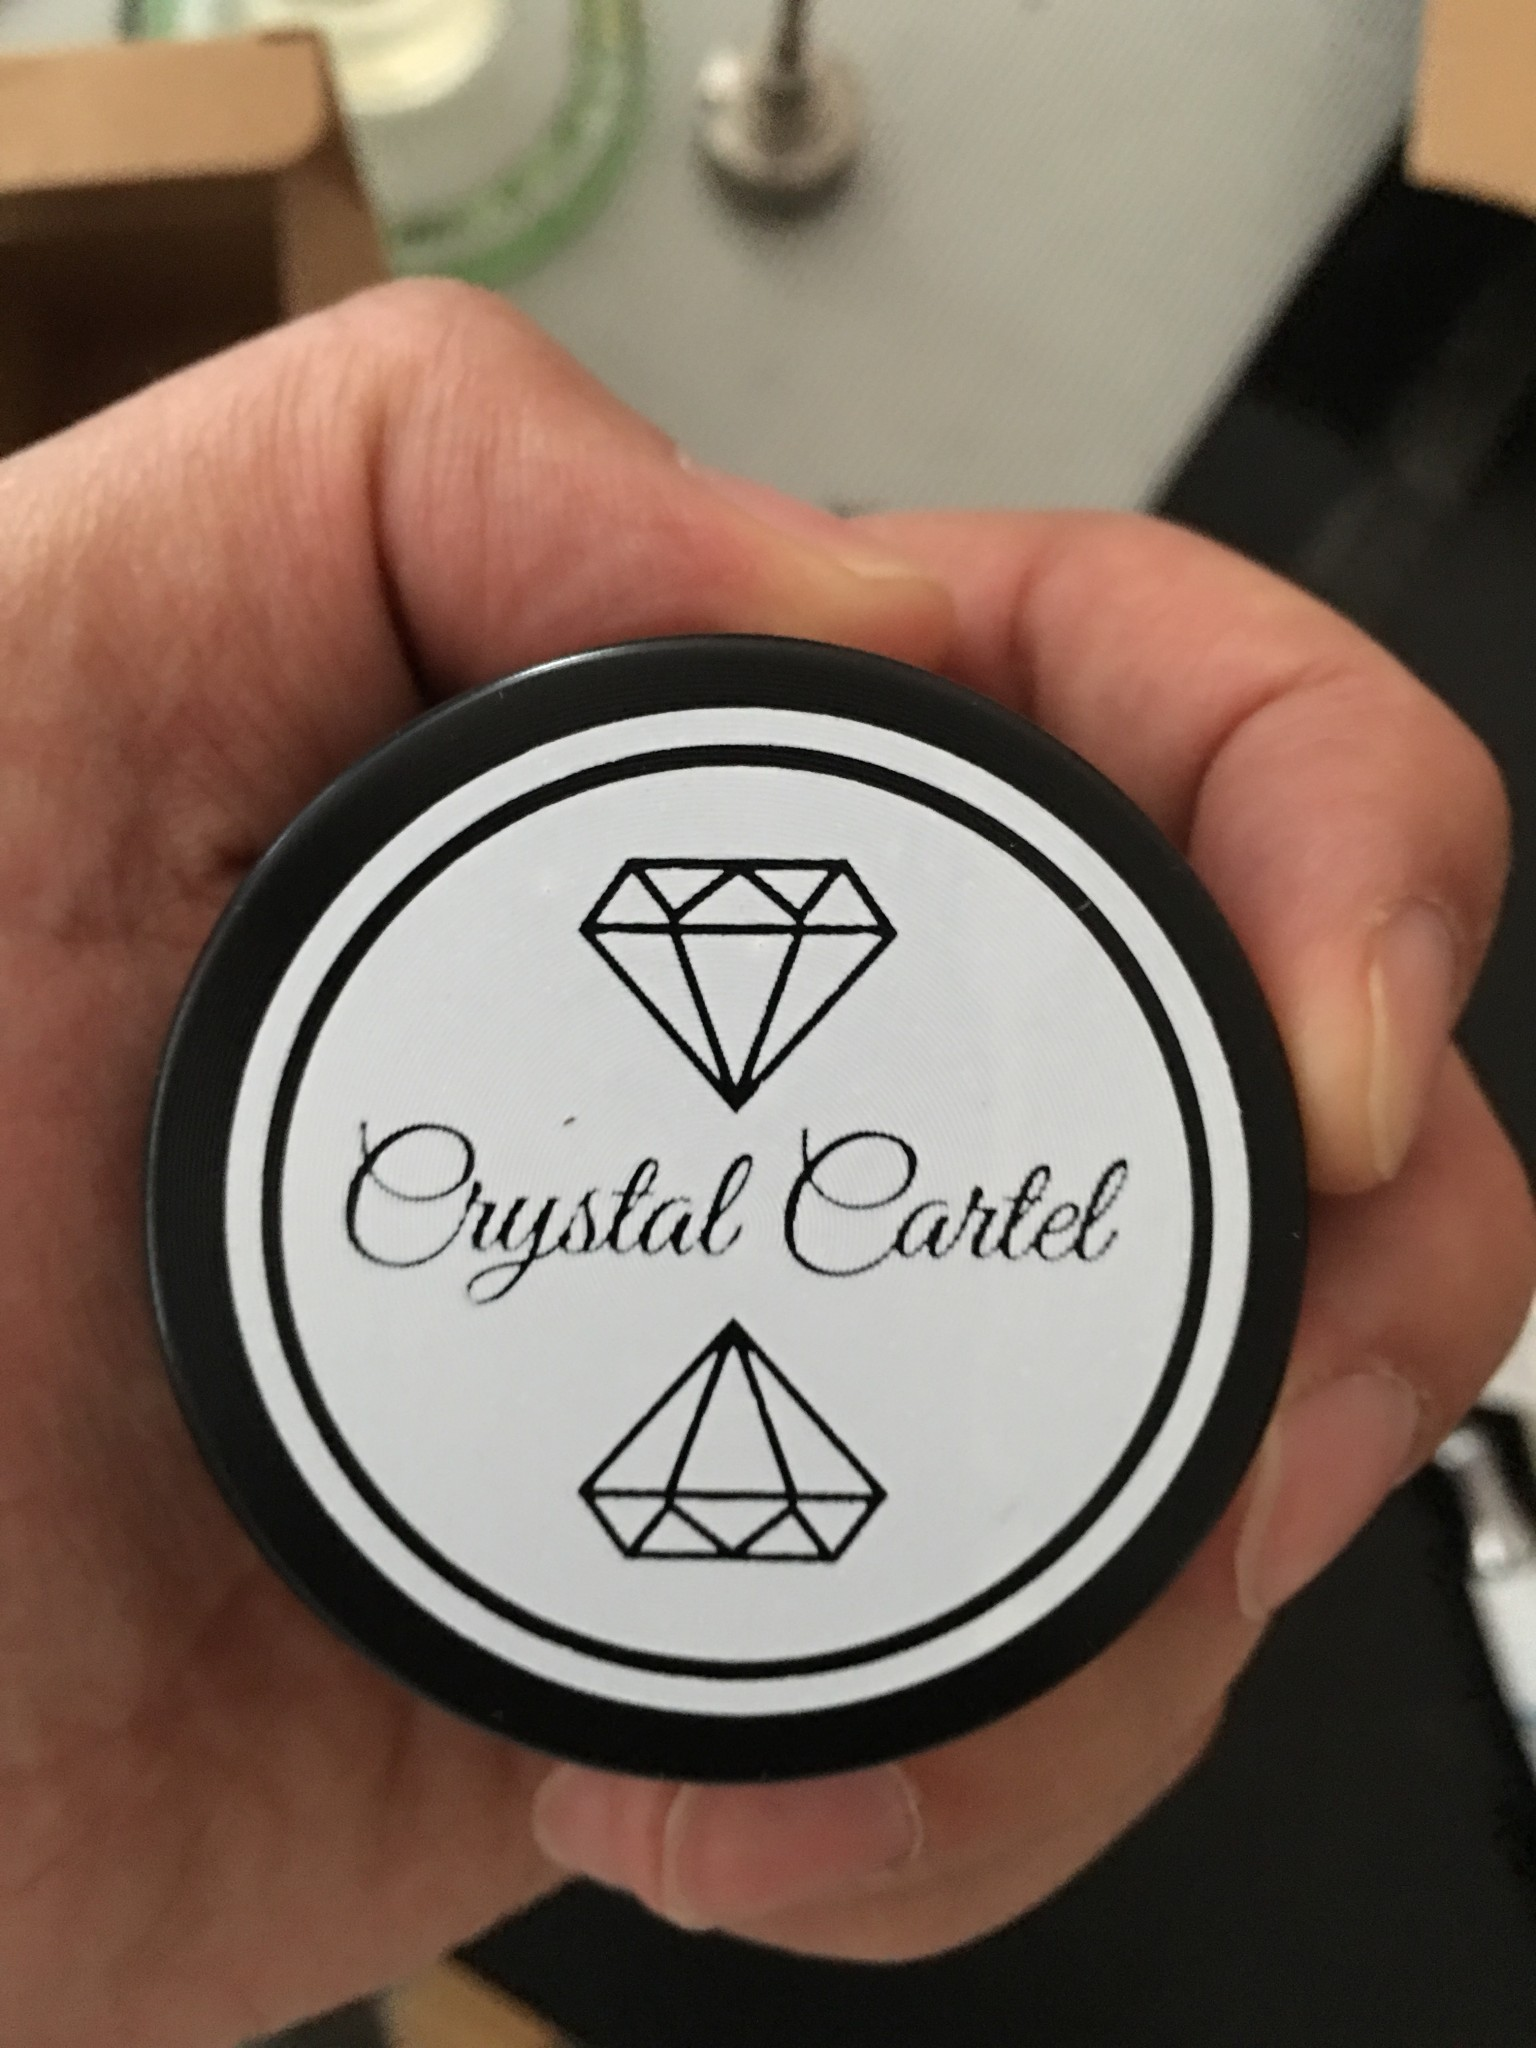 Crystal Cartel Grinder